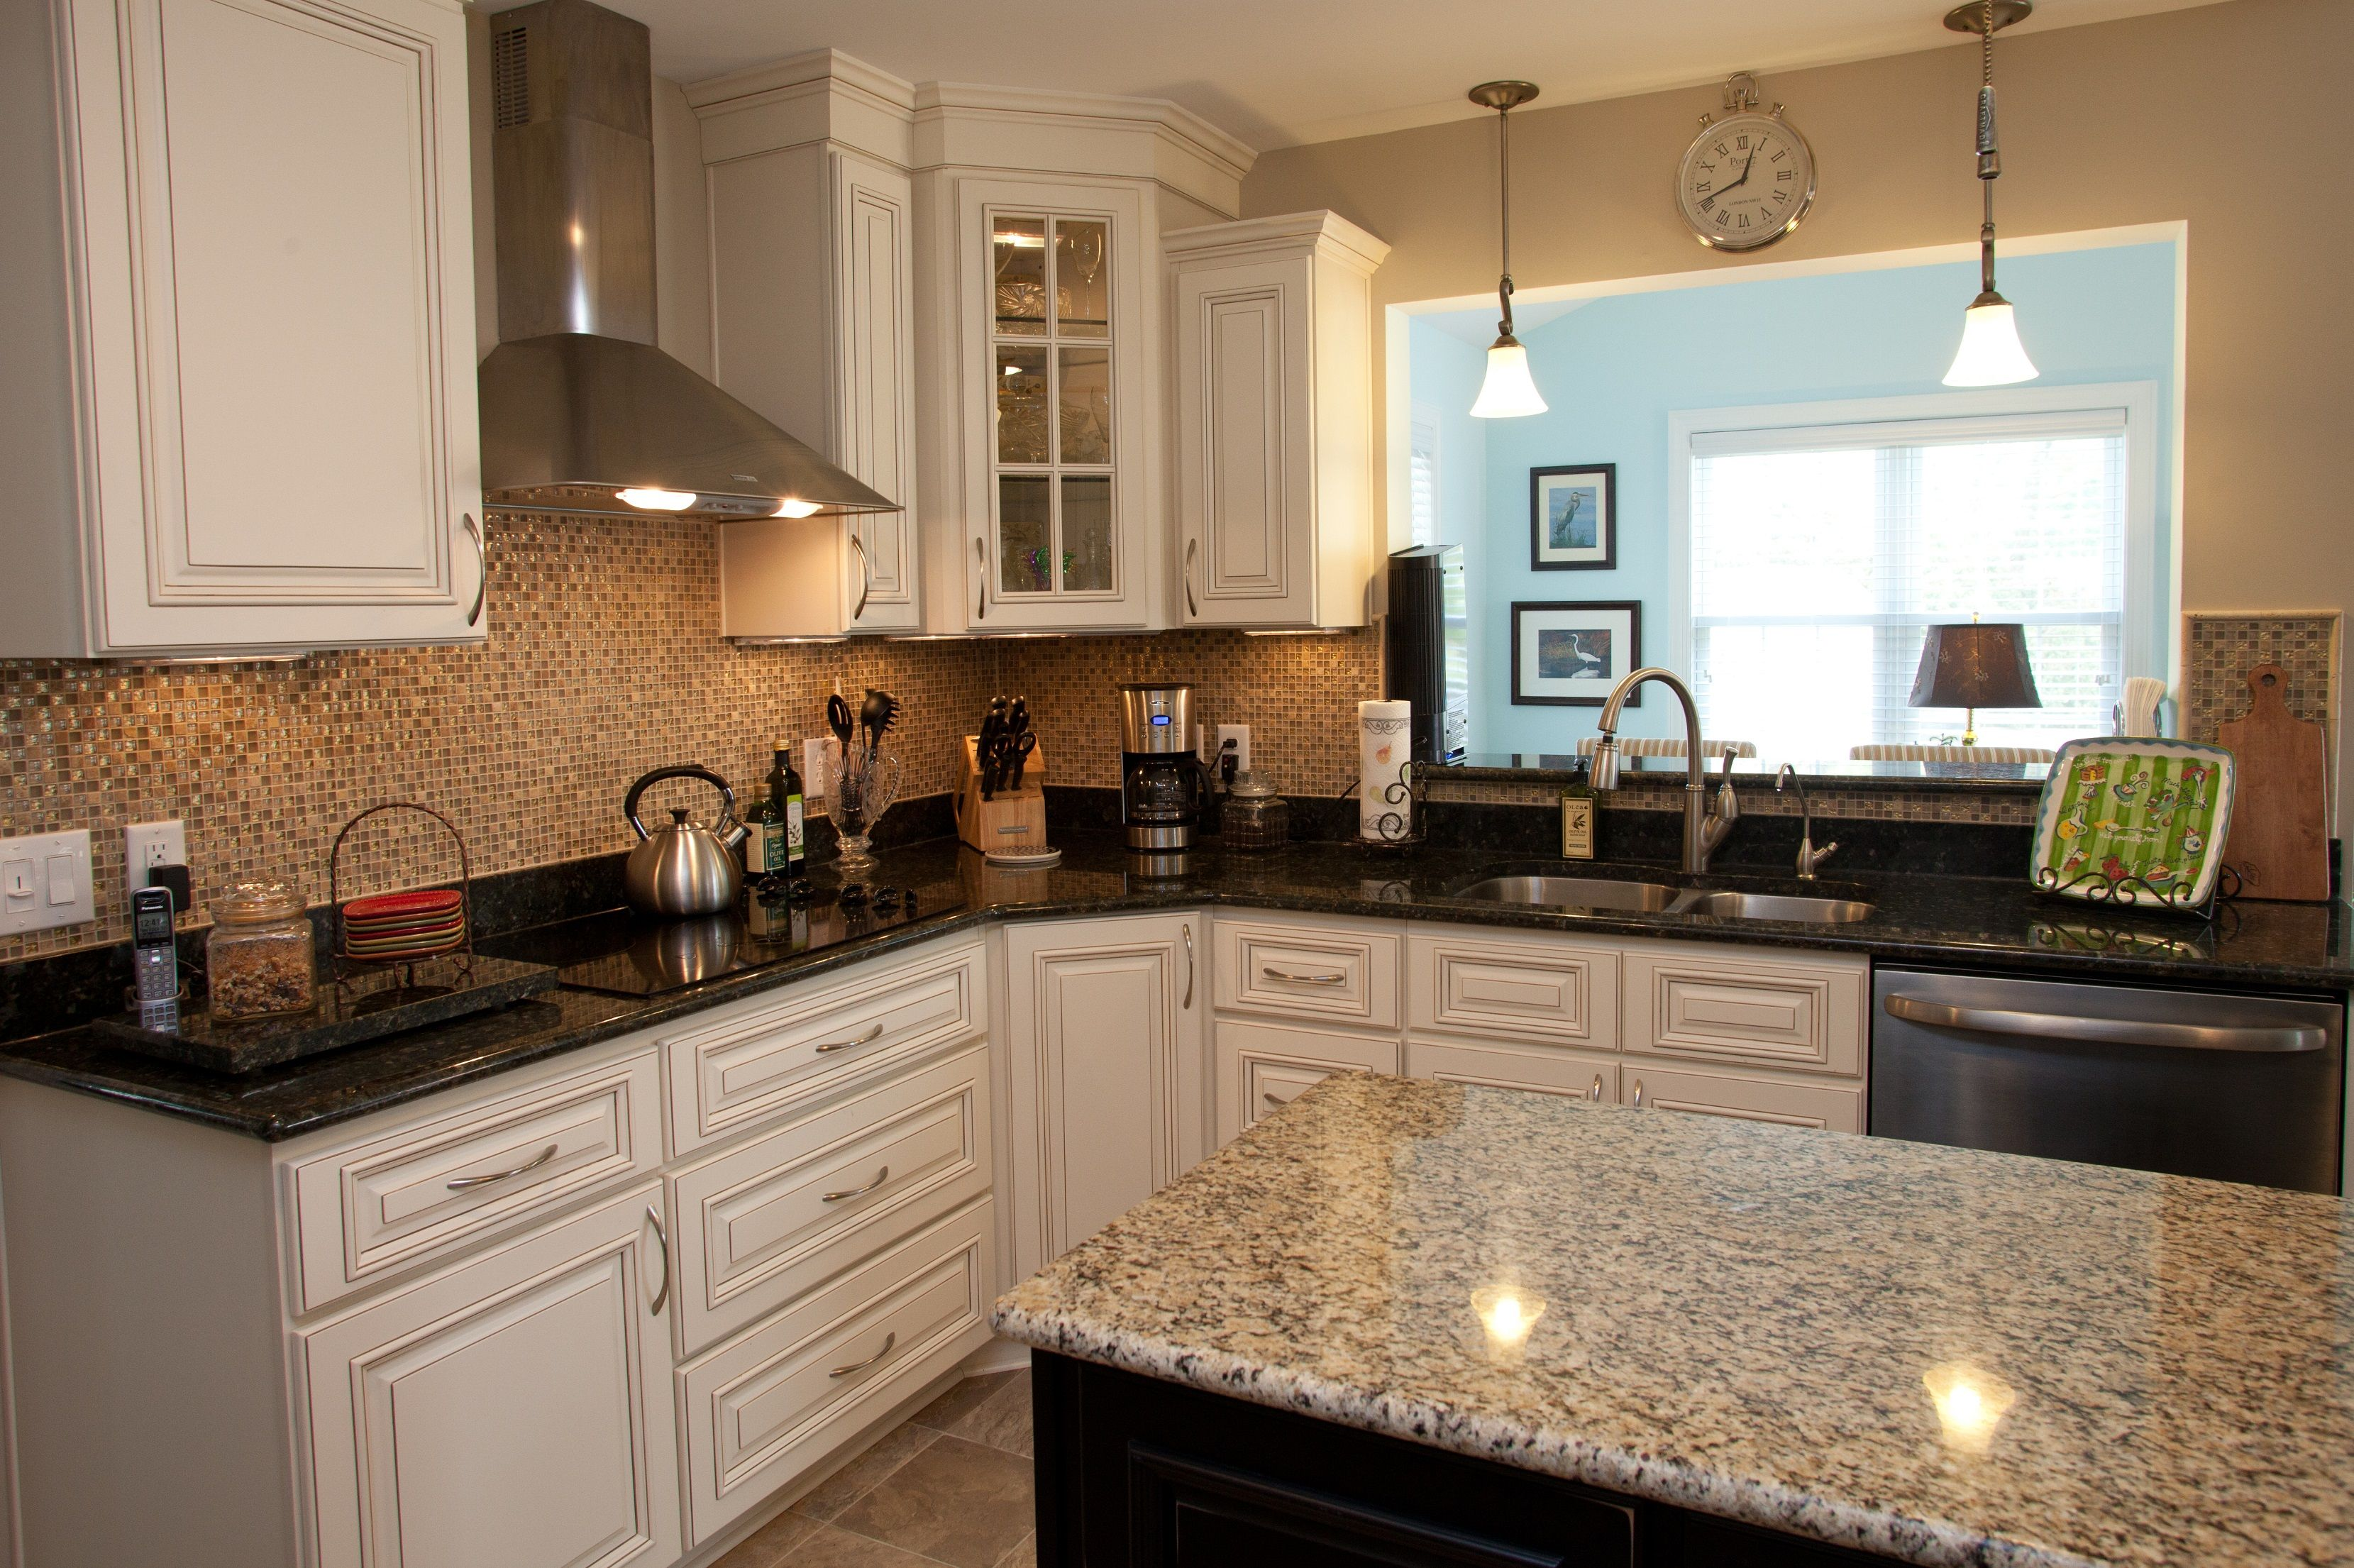 Newport Kitchen Cabinets new kitchen baclspalash | new kitchen in newport news virginia has